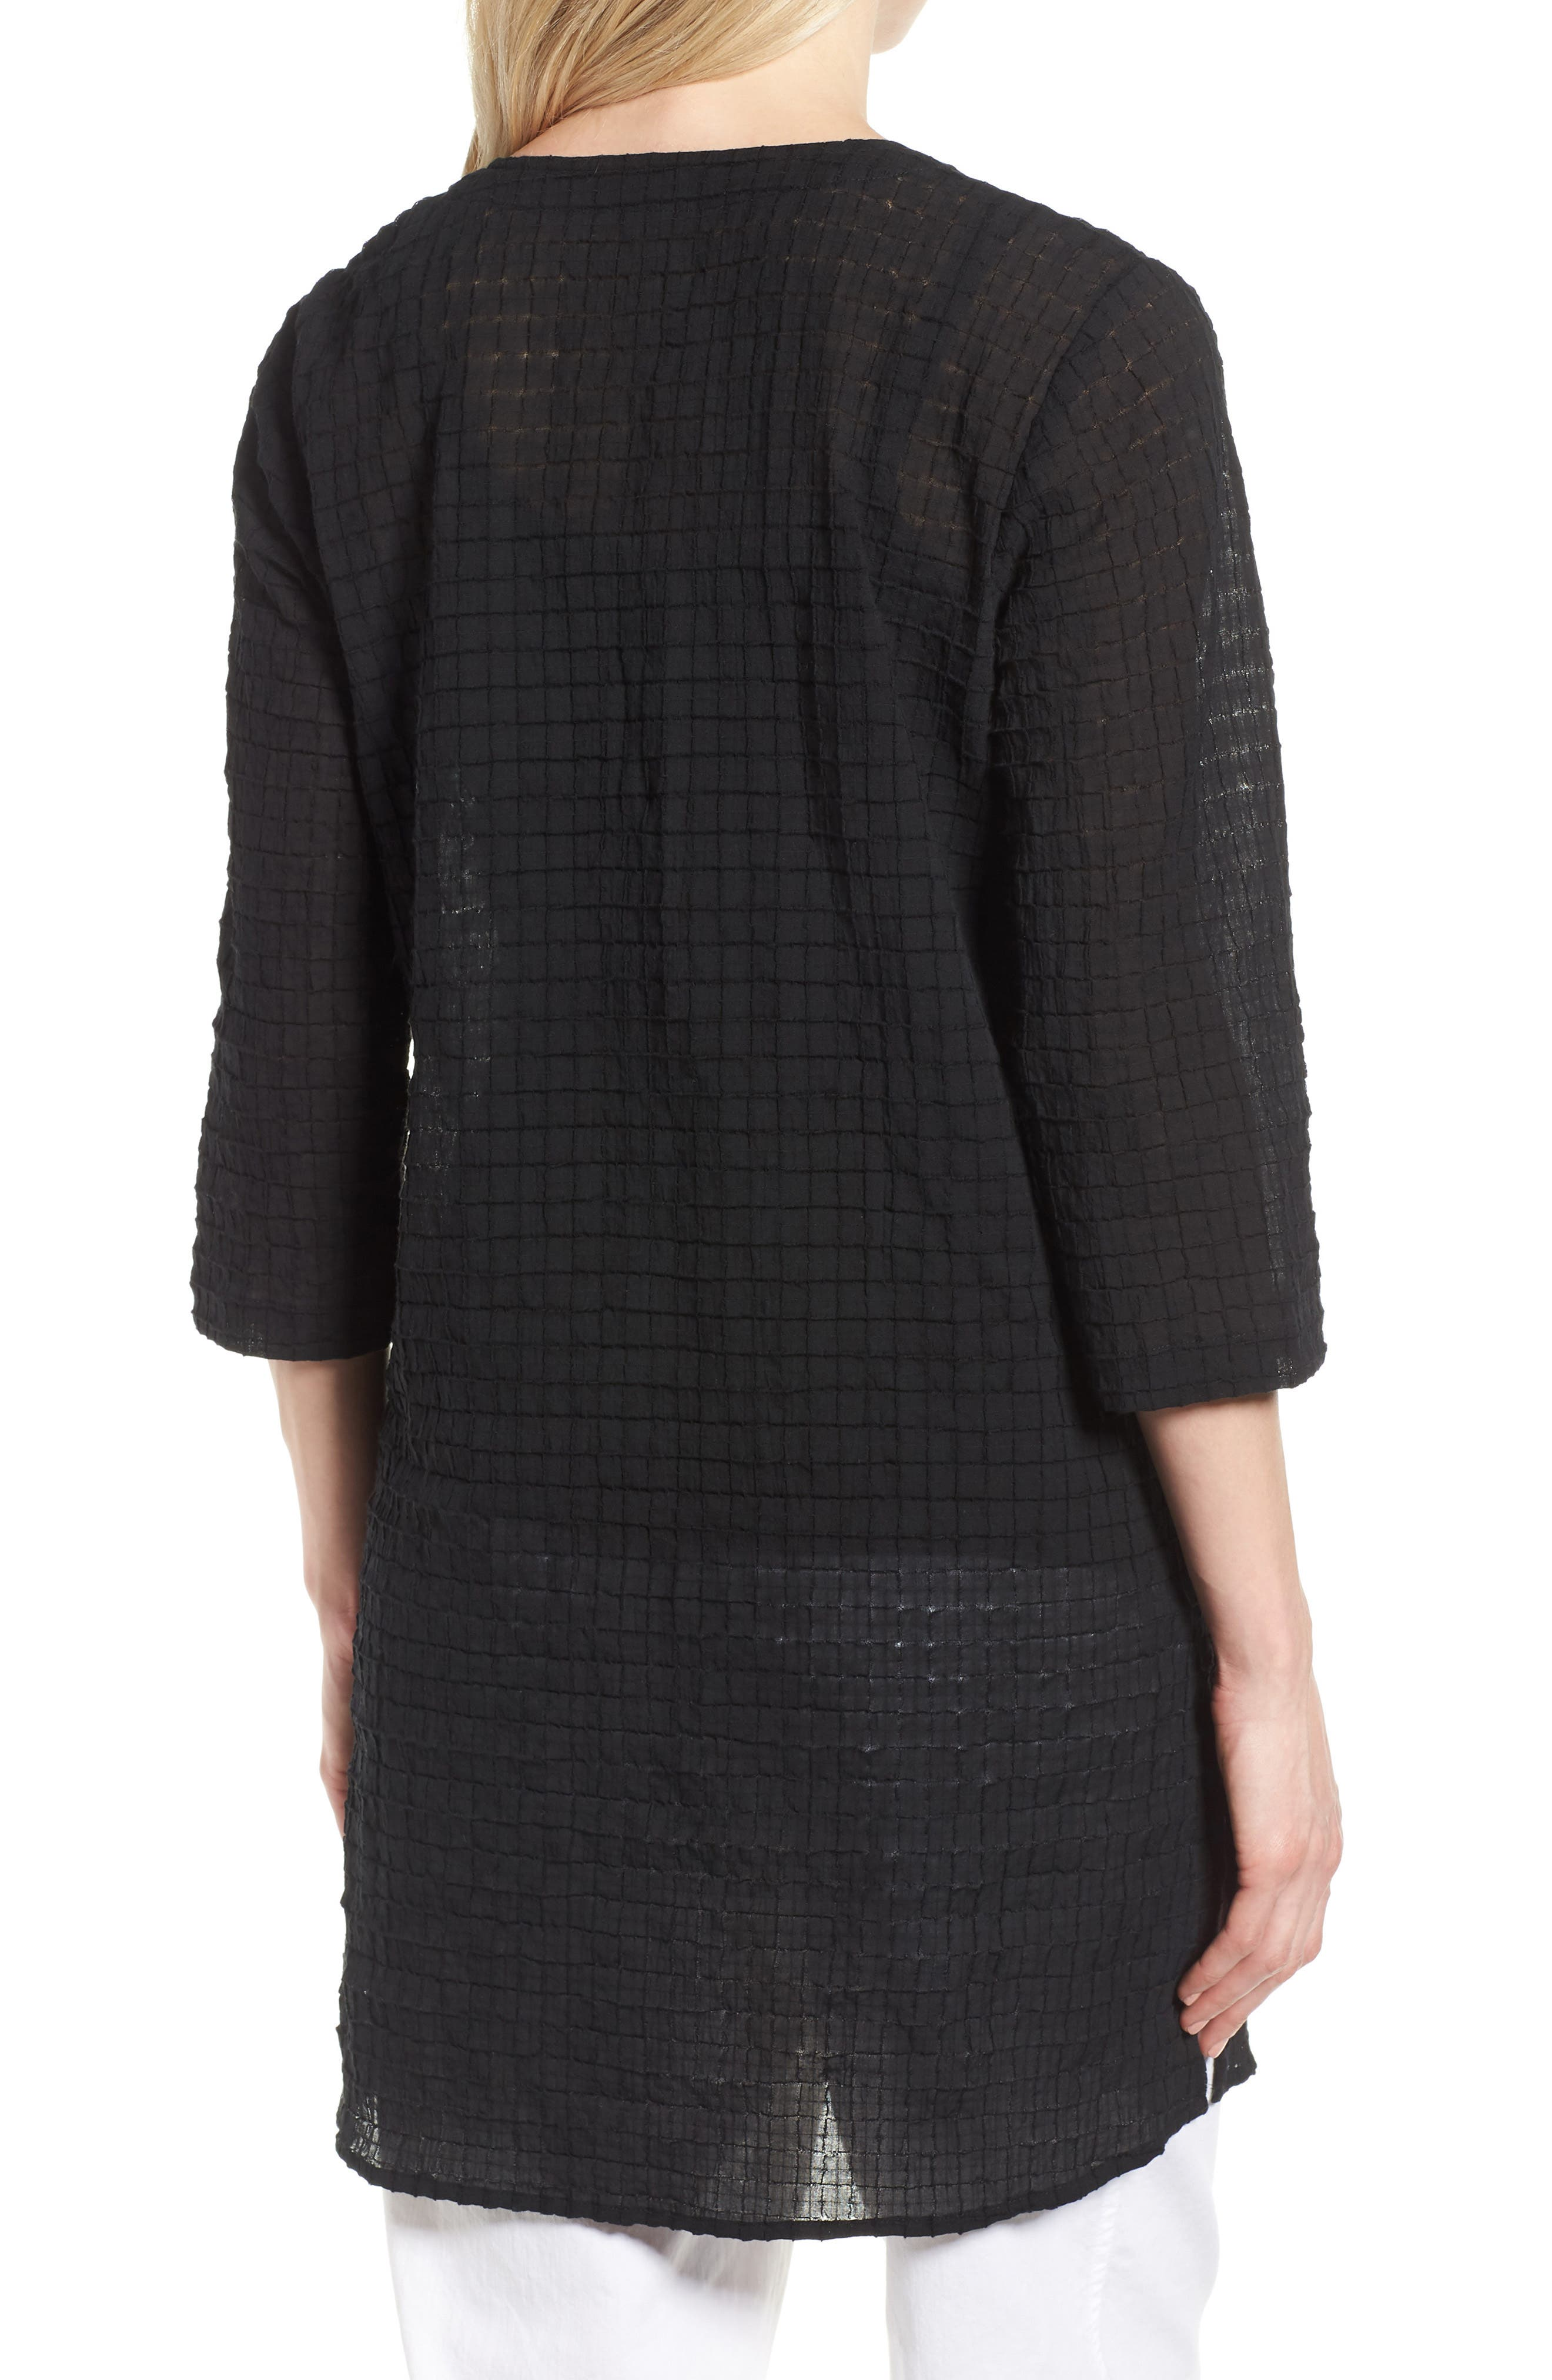 EILEEN FISHER,                             Stretch Organic Cotton Tunic,                             Alternate thumbnail 2, color,                             001